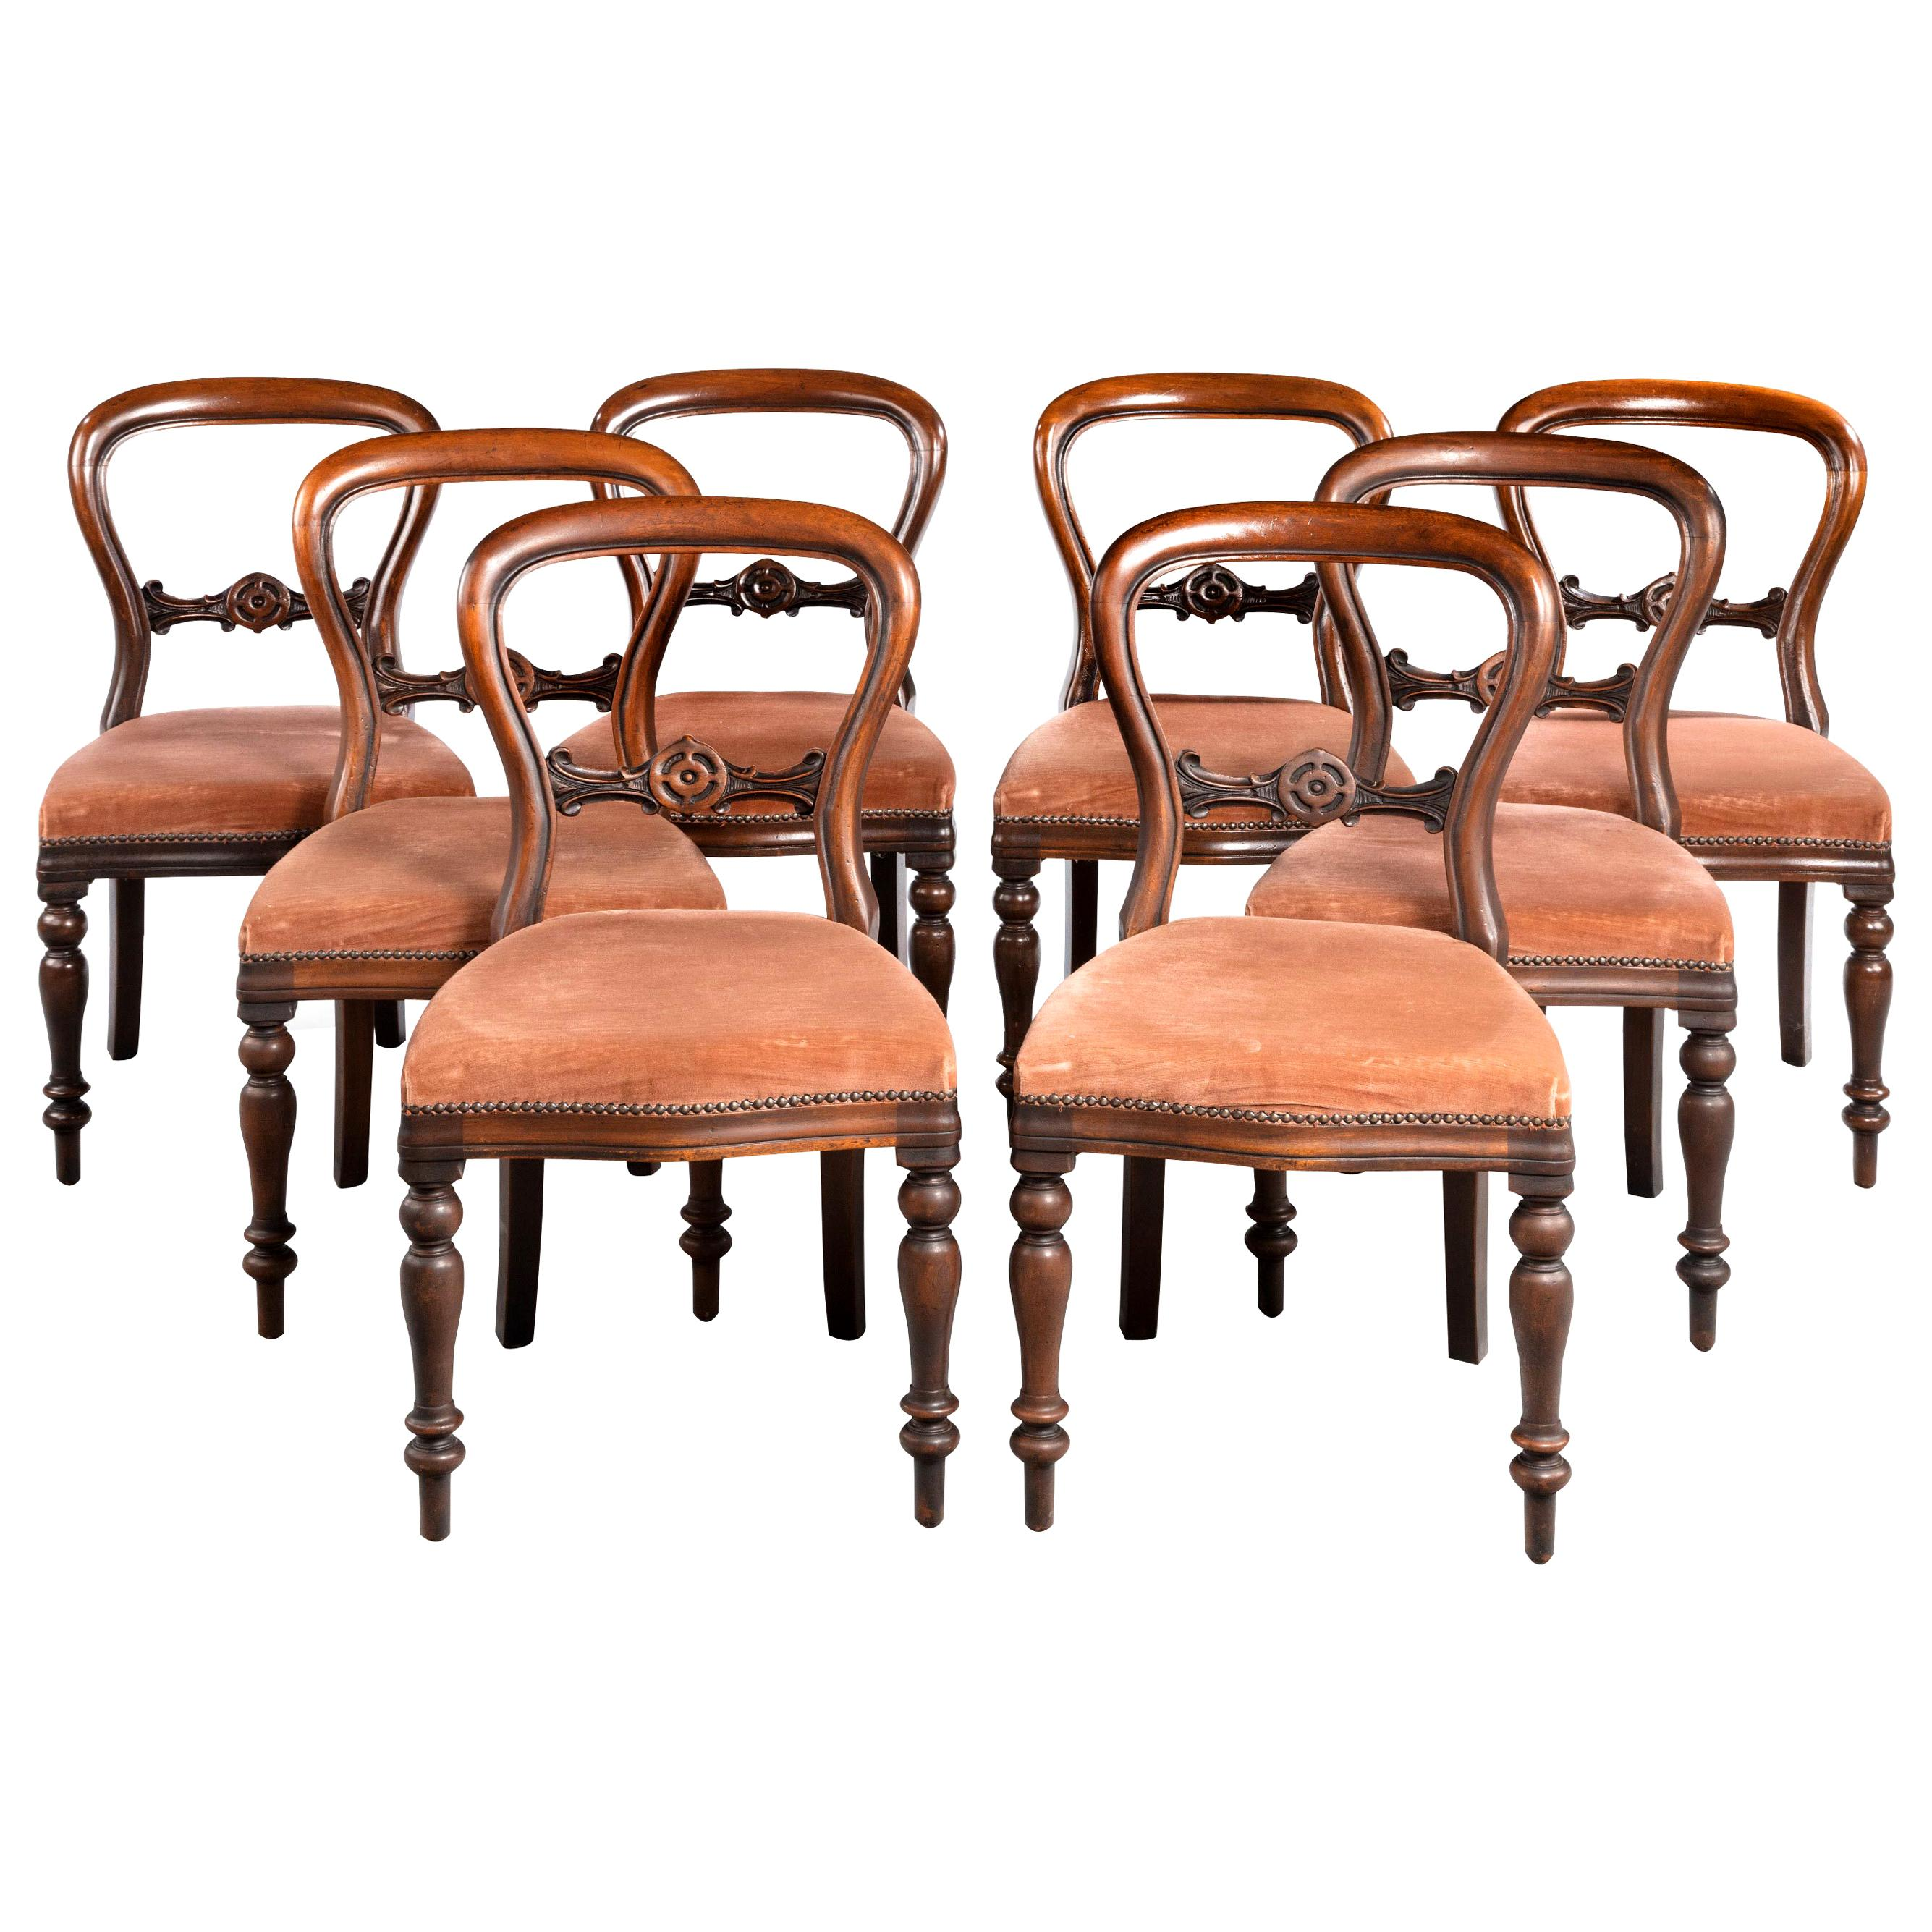 Attractive Set of Eight Late 19th Century Balloon Backed Chairs